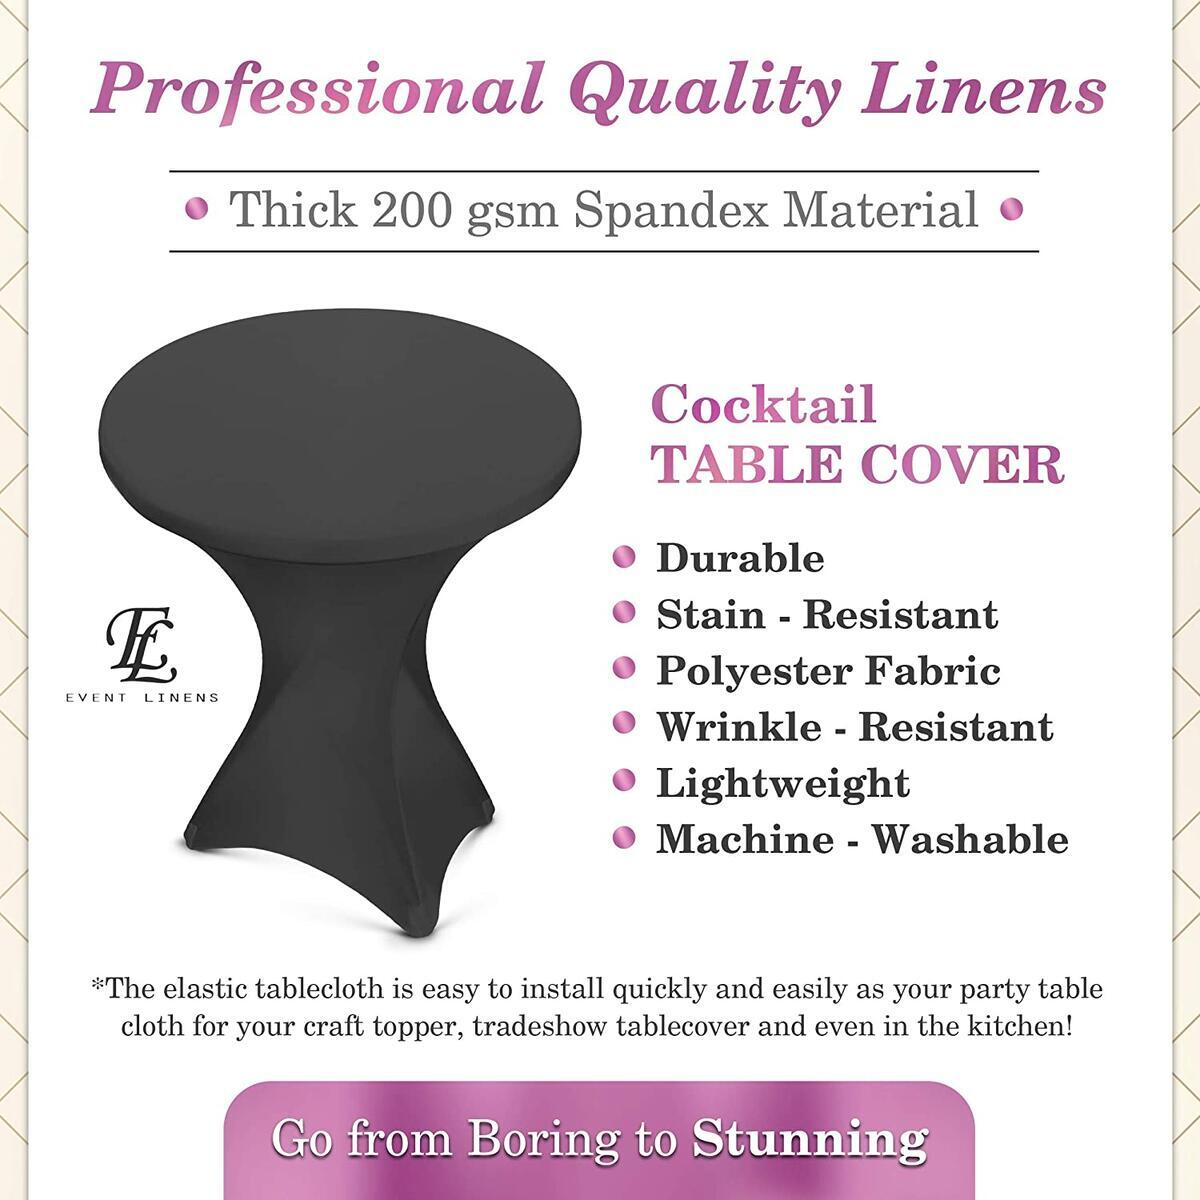 2-Pack Spandex Cocktail Table Cover - Fitted High Top Table Cloth, Stretch Tablecloth Covers for Cocktail Tables